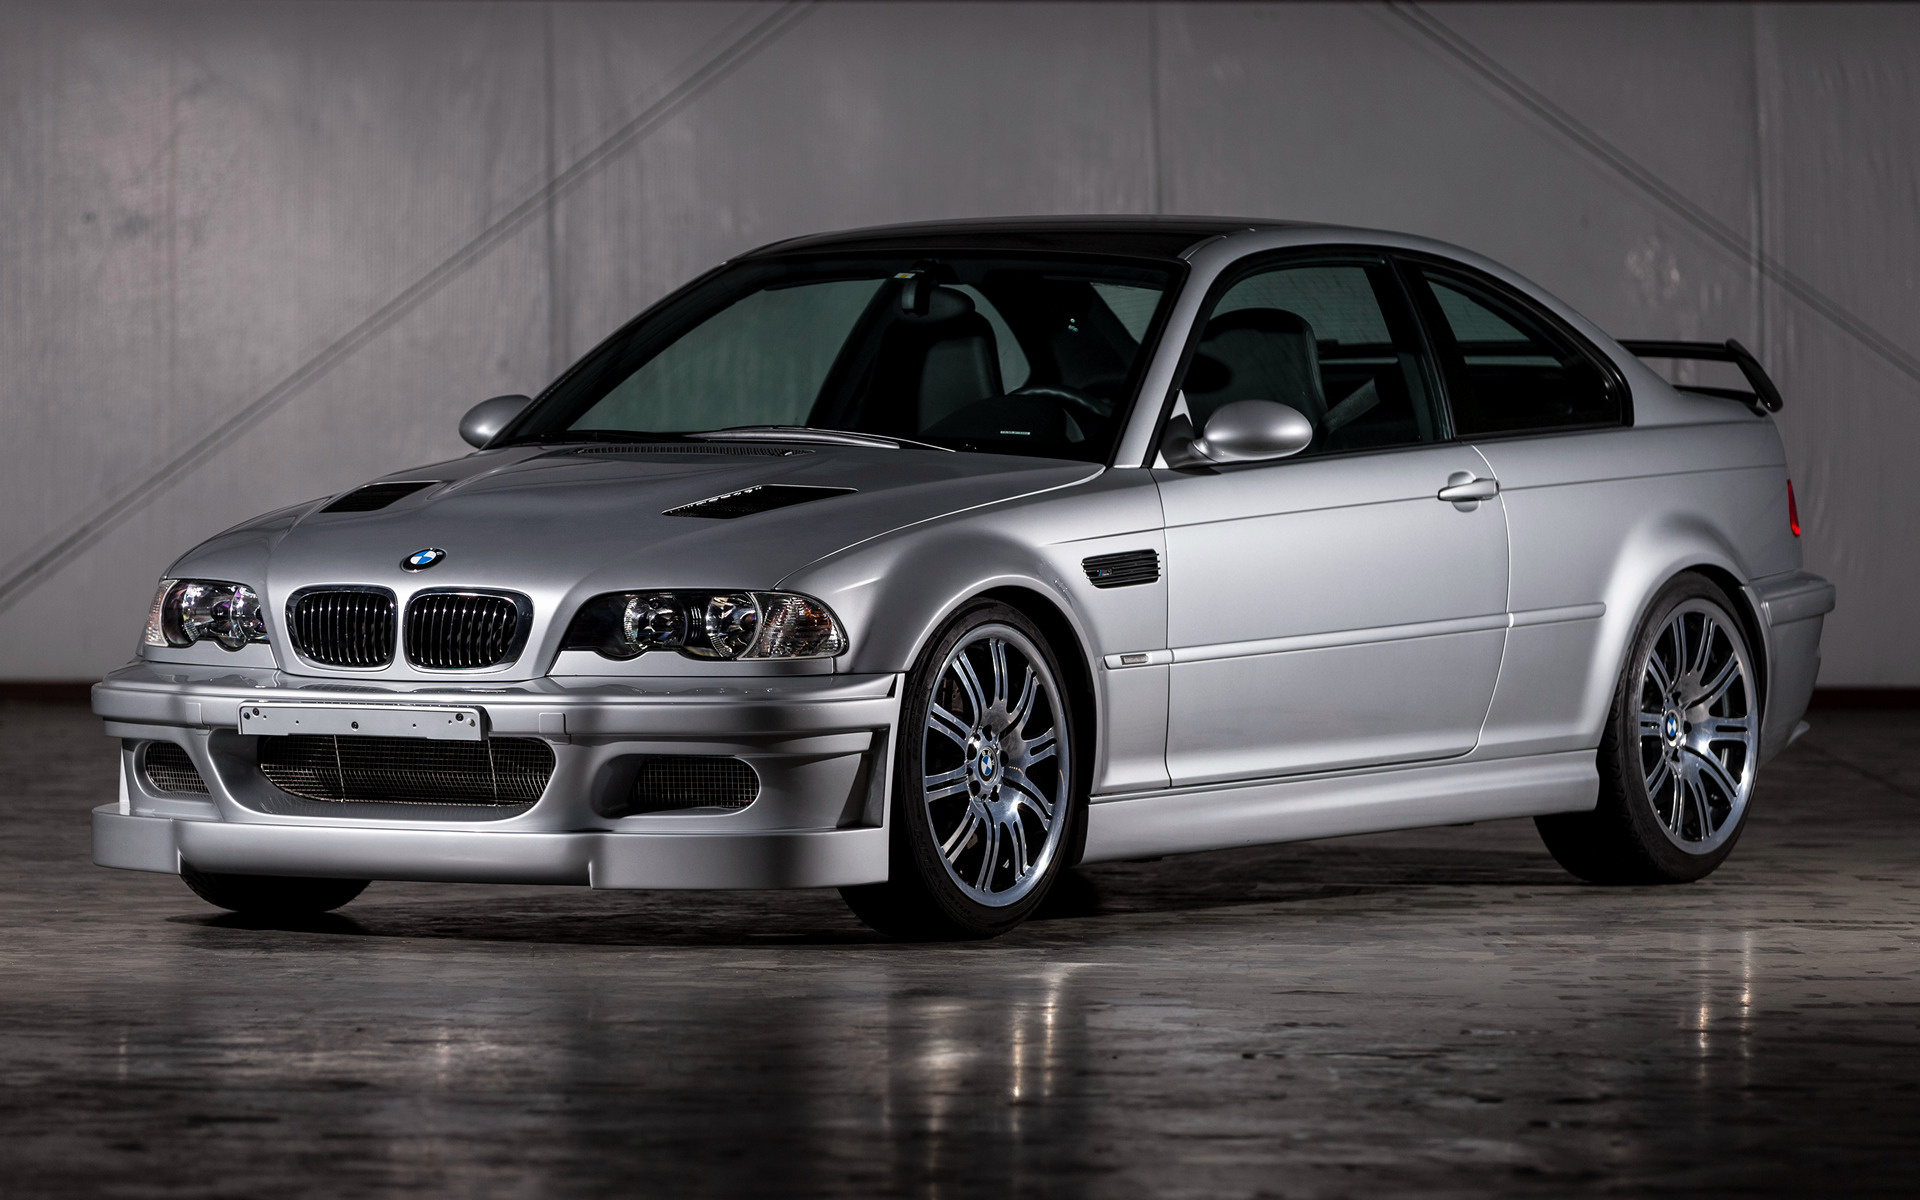 Lincoln Wallpaper Car 2001 Bmw M3 Gtr Coupe Road Version Wallpapers And Hd